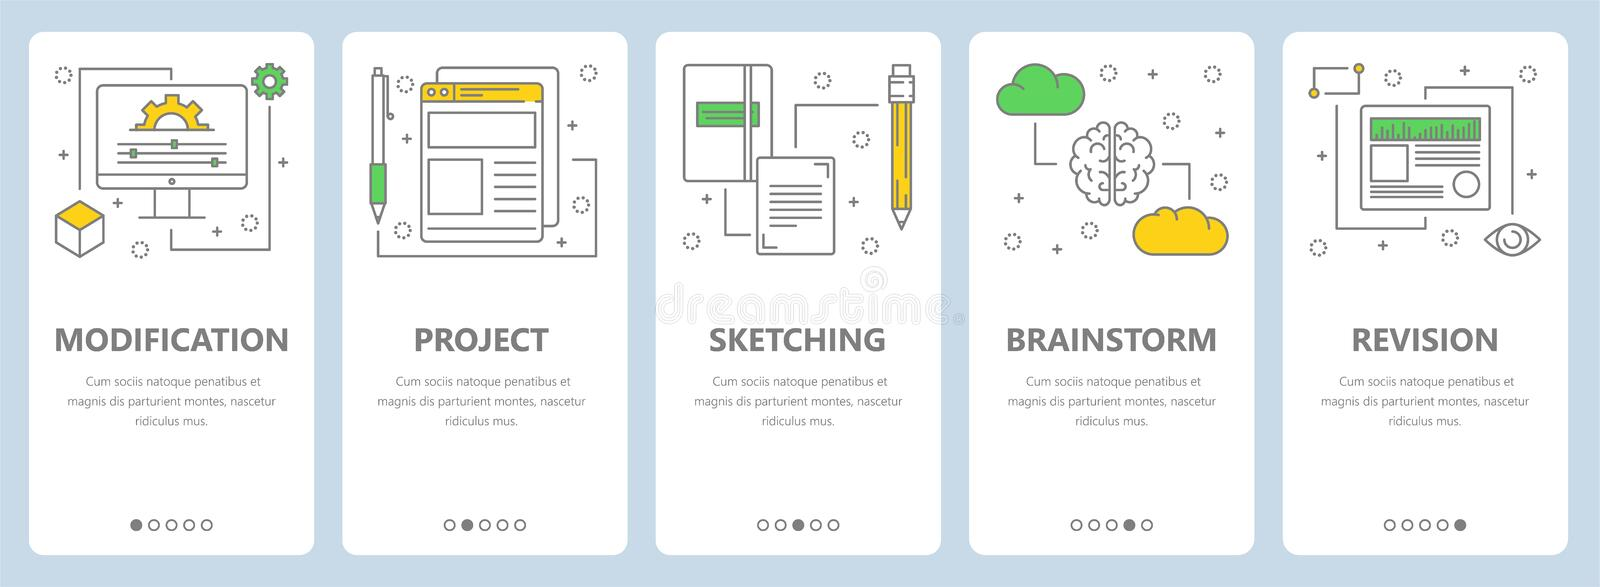 Vector modern thin line art style modification concept banners stock illustration